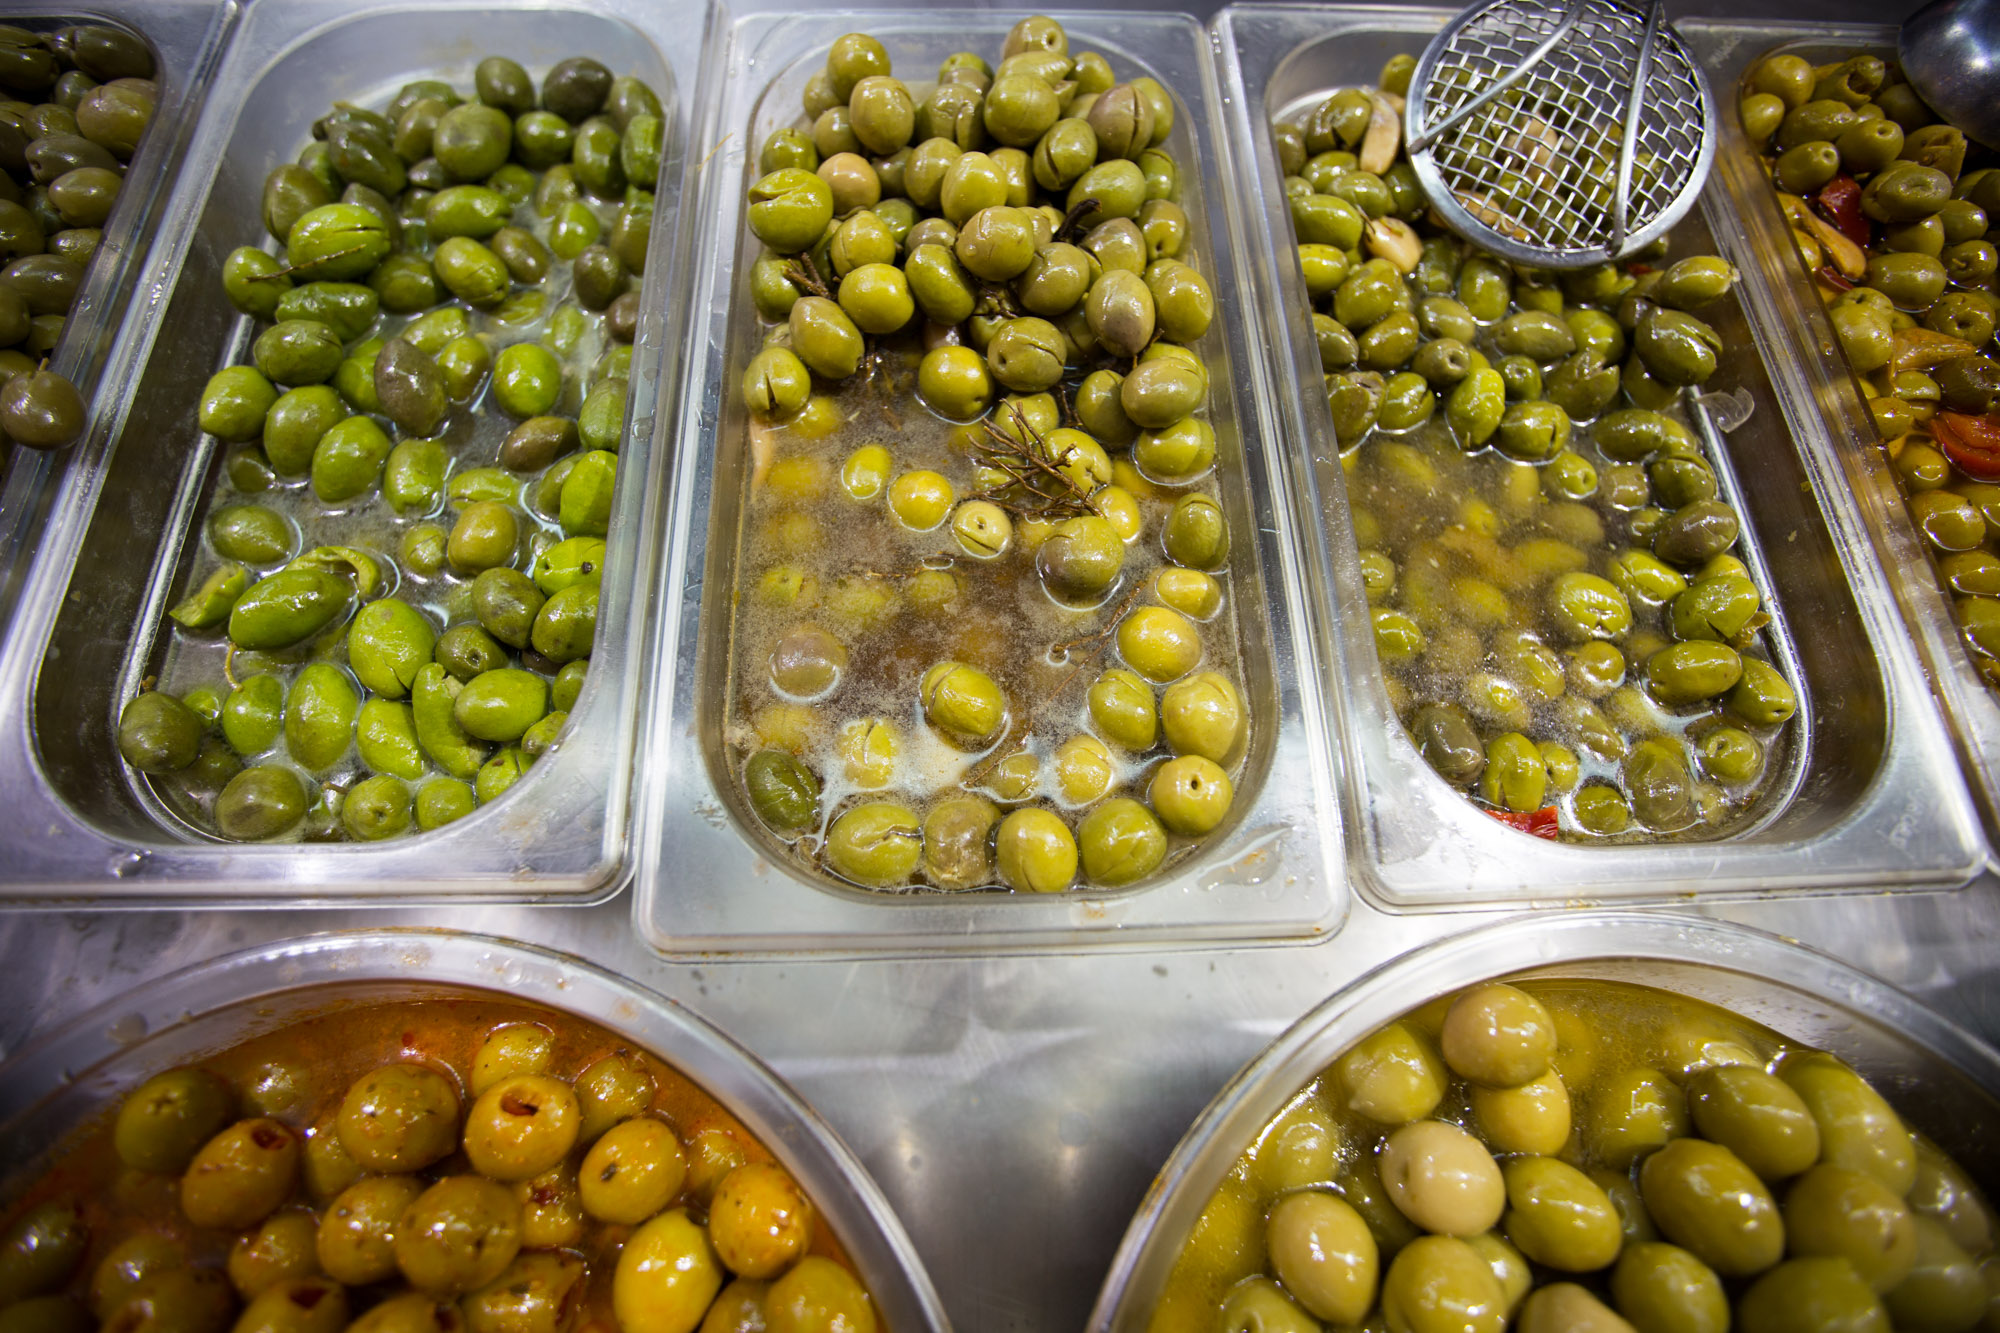 Olives from Catalonia